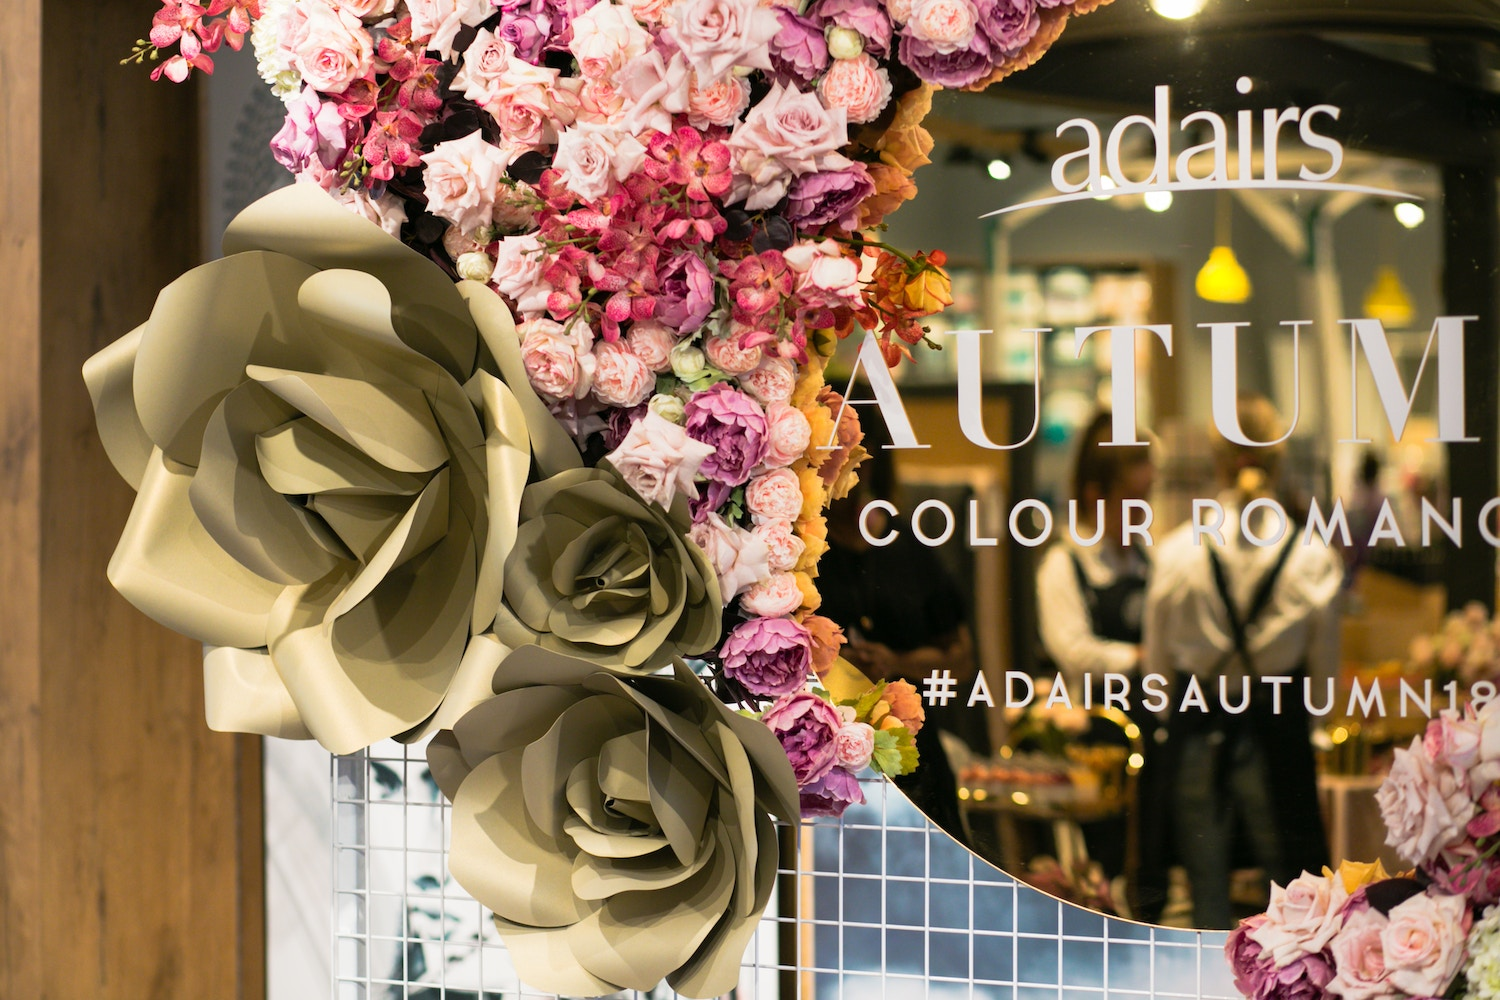 AUTUMN ROMANCE AT THE ADAIRS LAUNCH